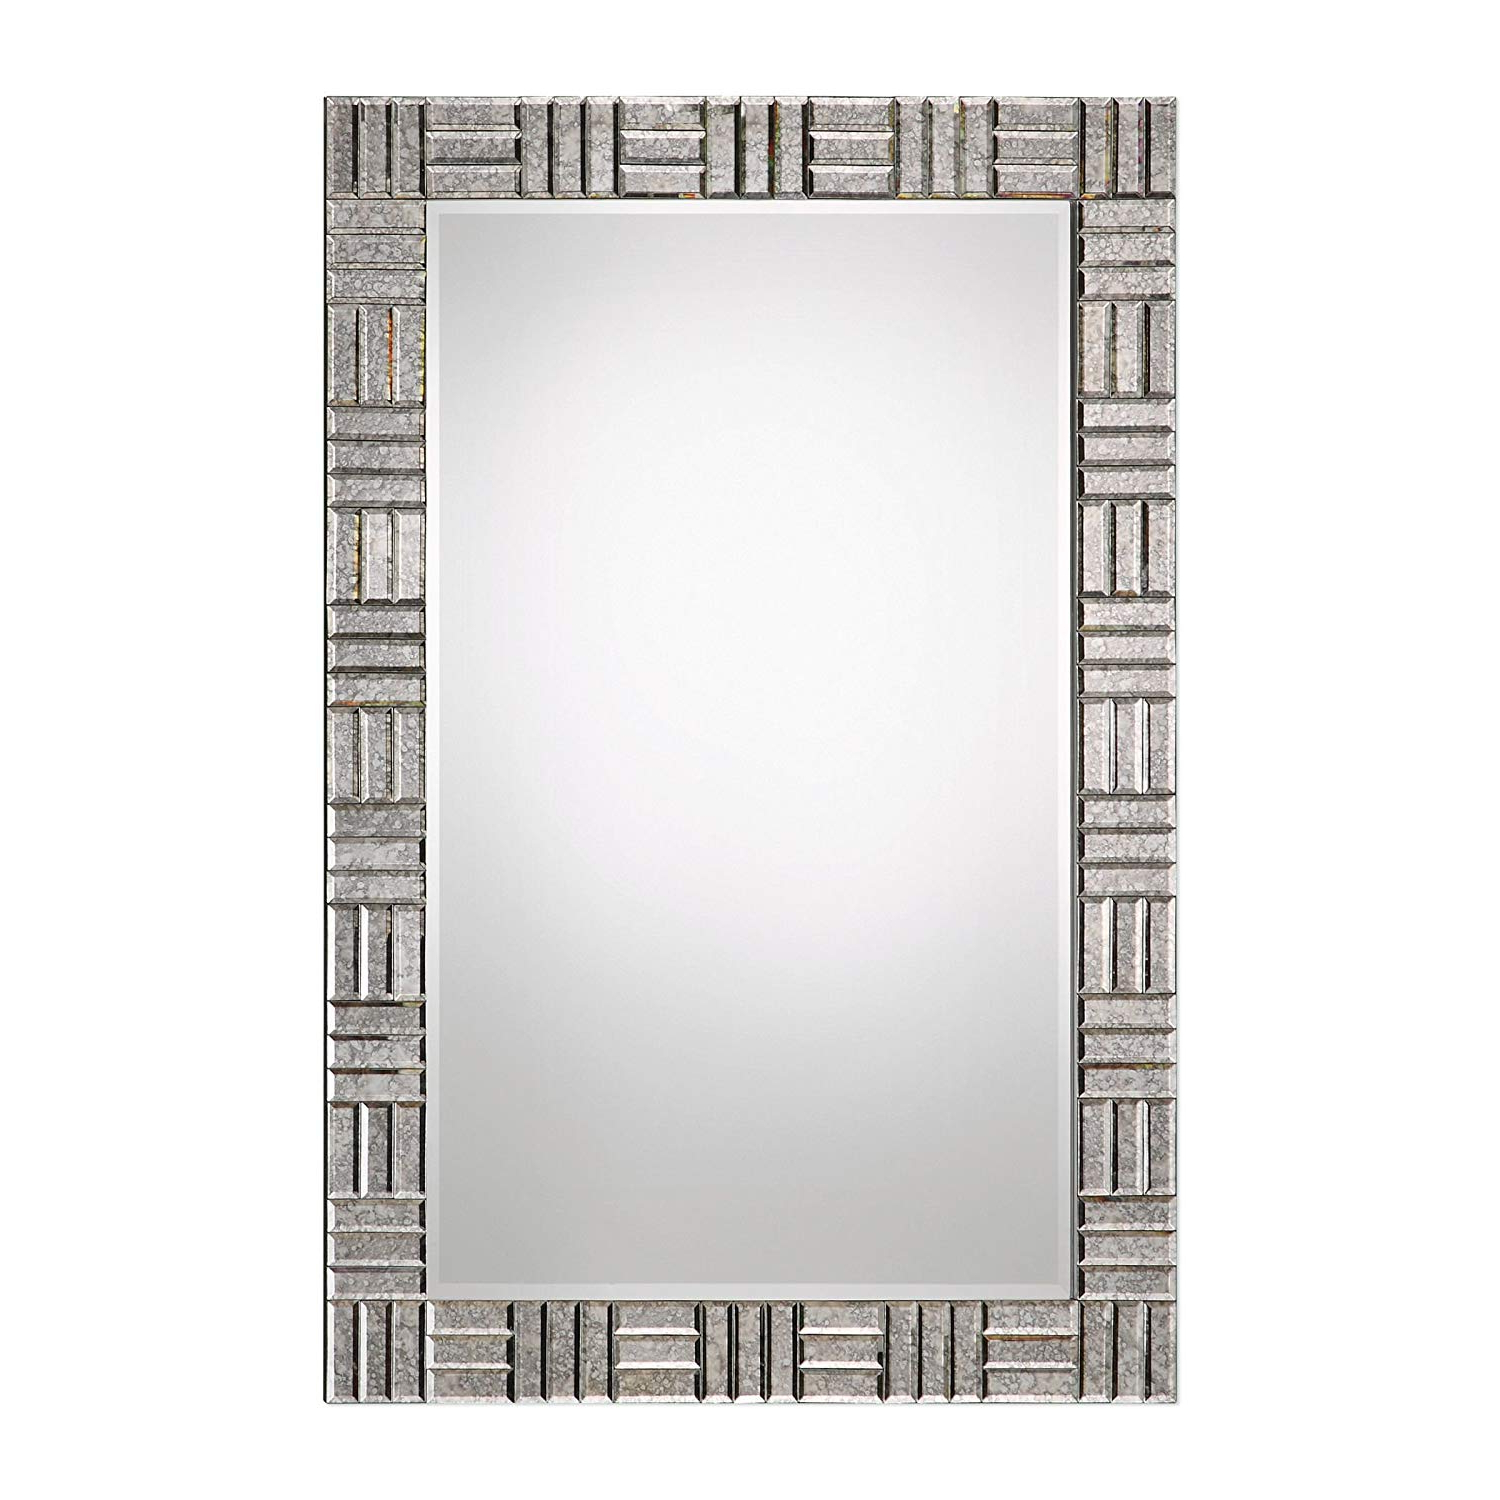 Amazon: Mid Century Modern Mirror Framed Wall Mirror Inside Most Recently Released Mid Century Wall Mirrors (Gallery 18 of 20)